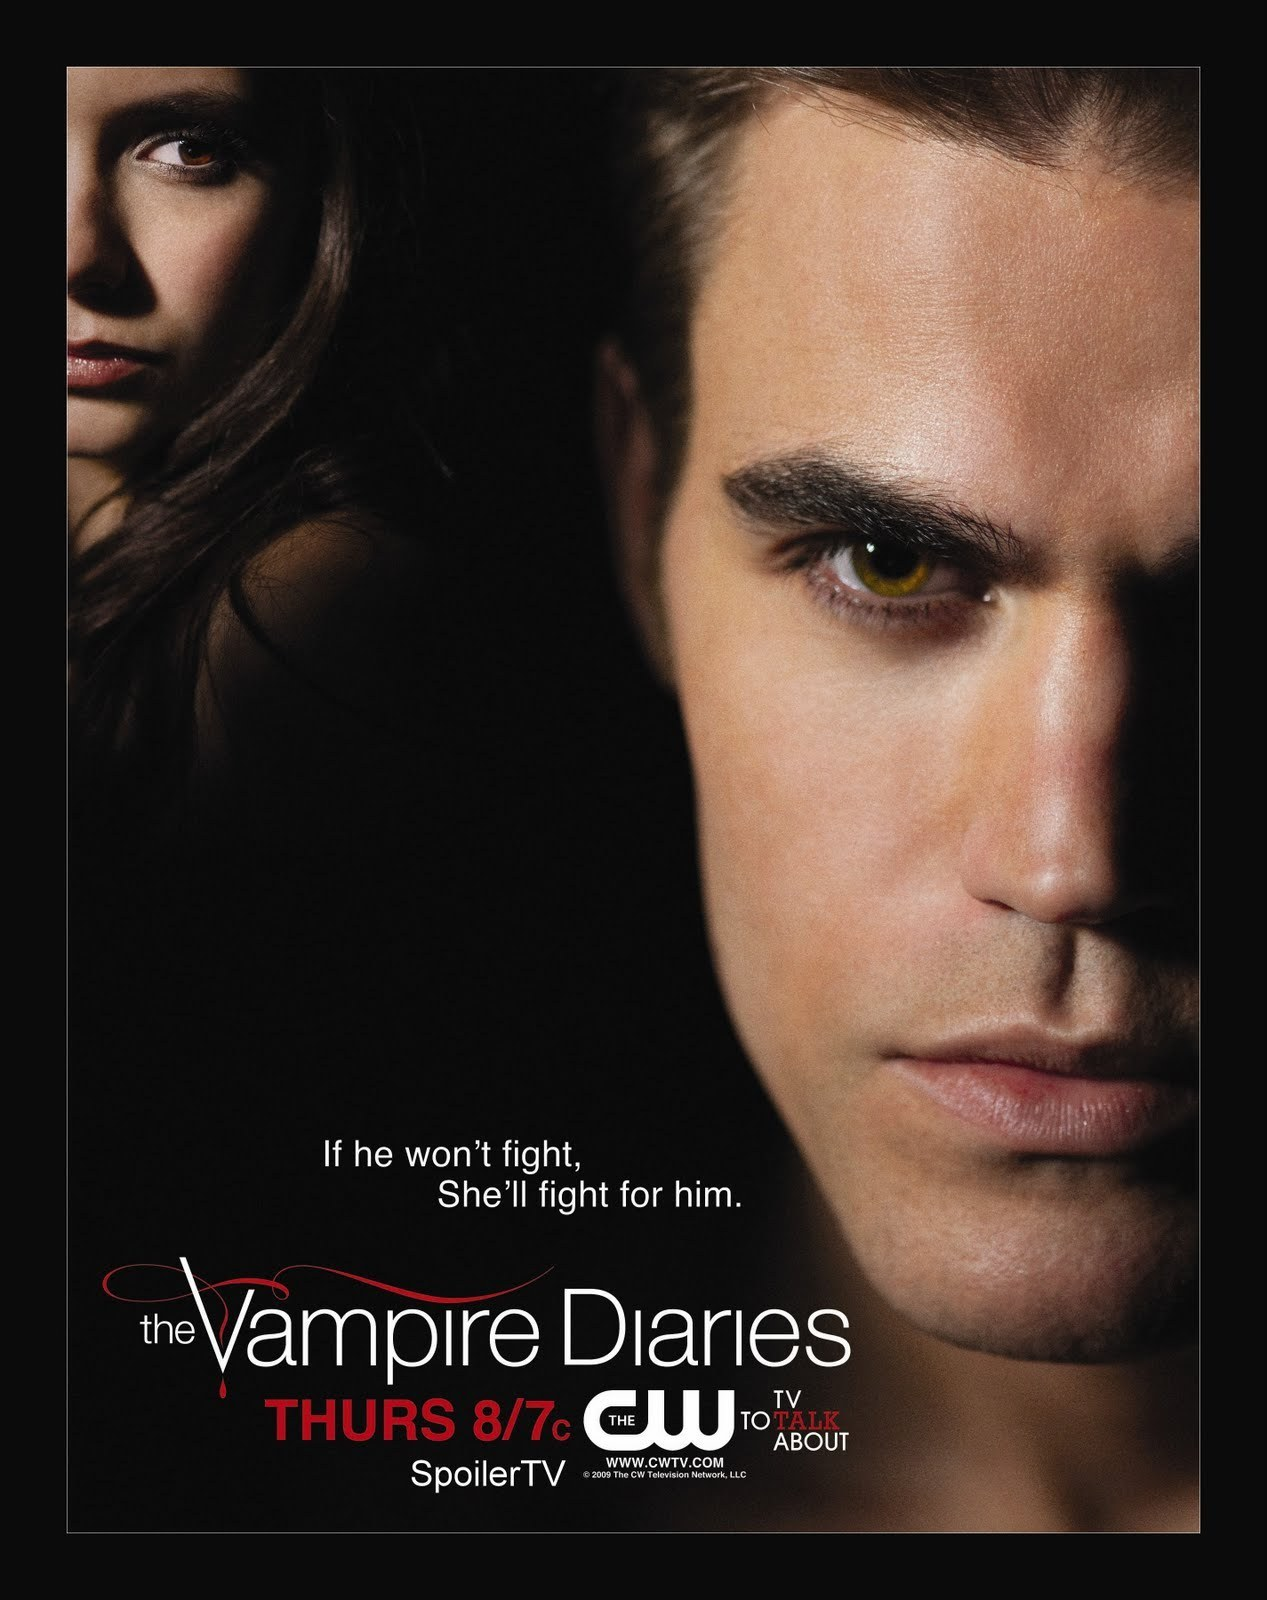 http://images2.fanpop.com/image/photos/11300000/new-poster-the-vampire-diaries-11318519-1267-1600.jpg